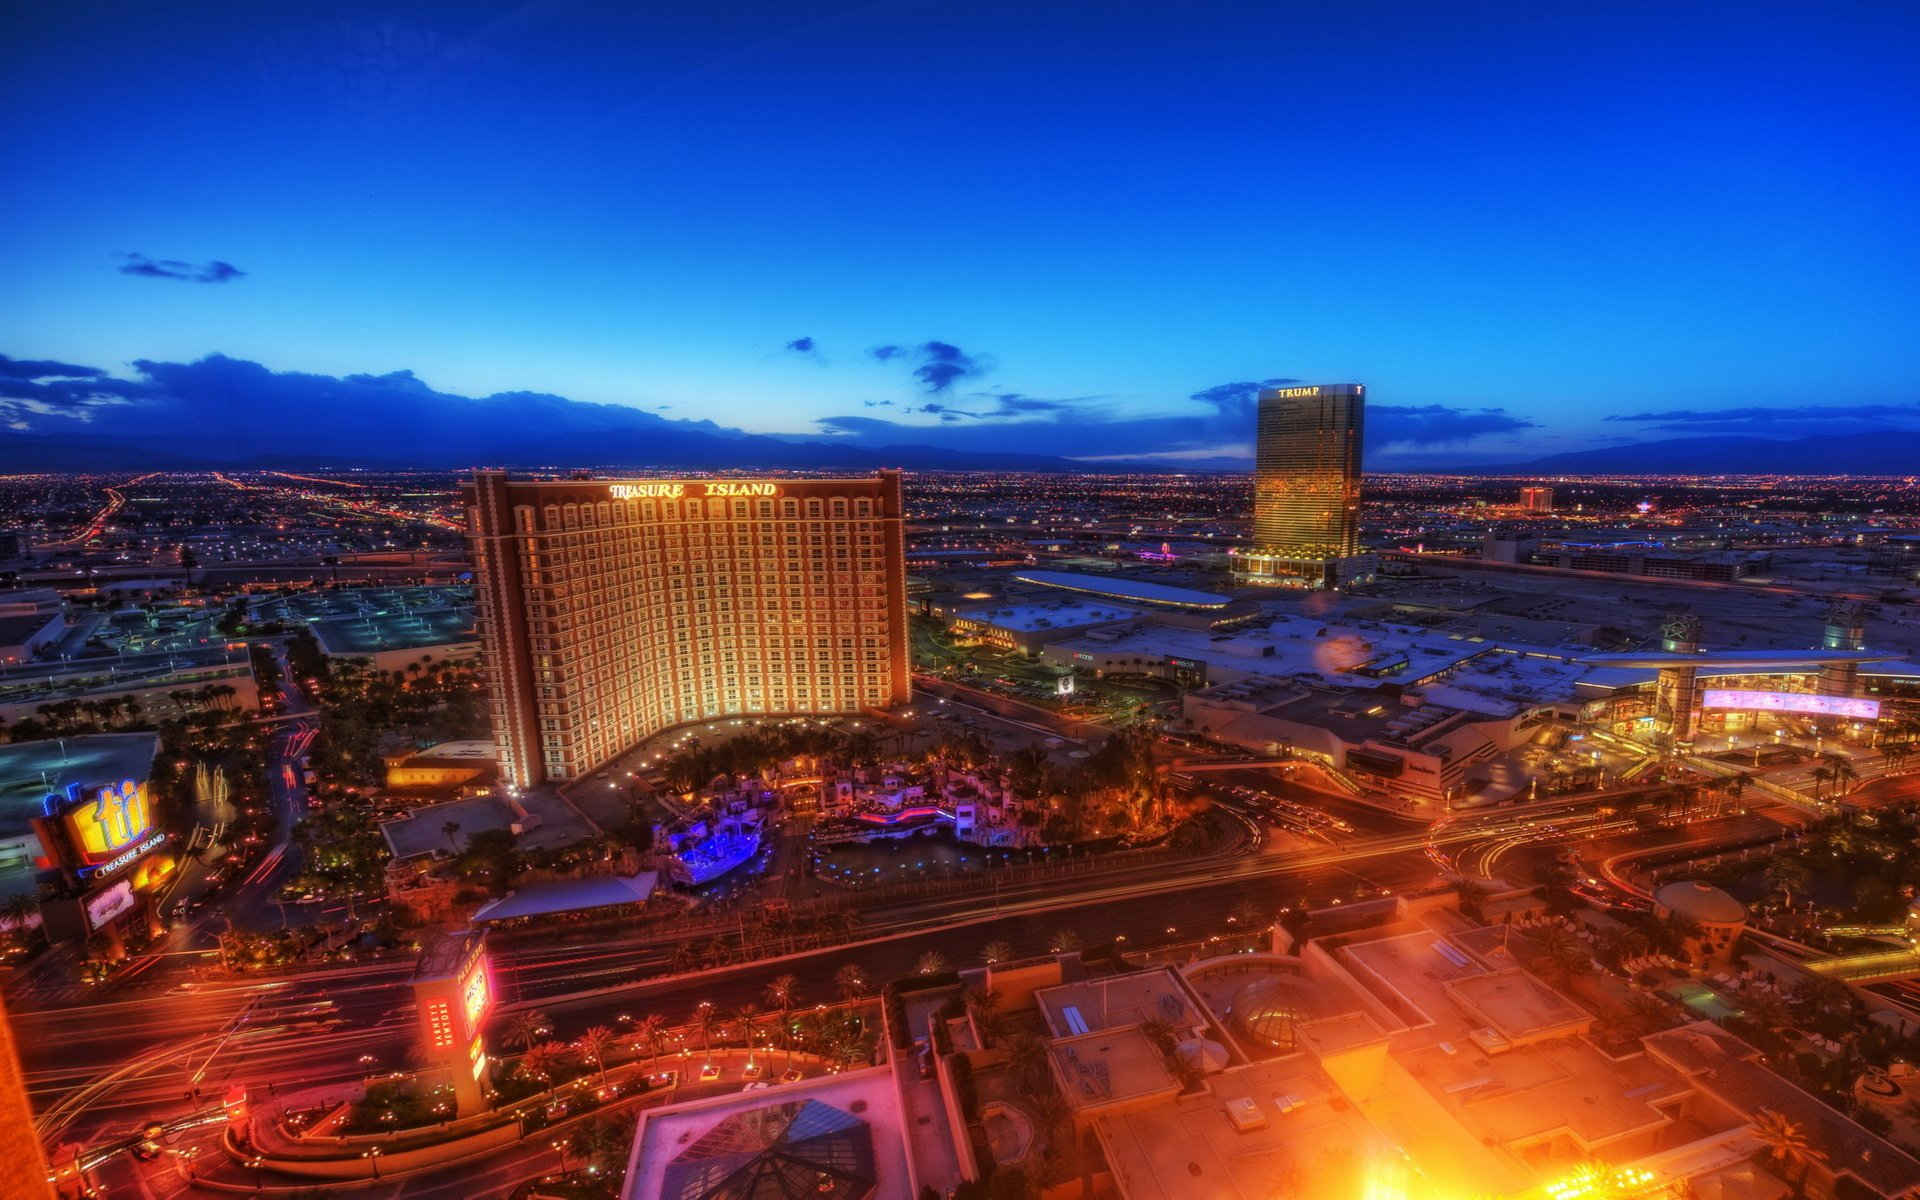 Las vegas hd wallpaper background image 1920x1200 id 429337 wallpaper abyss - Las vegas wallpaper 4k ...